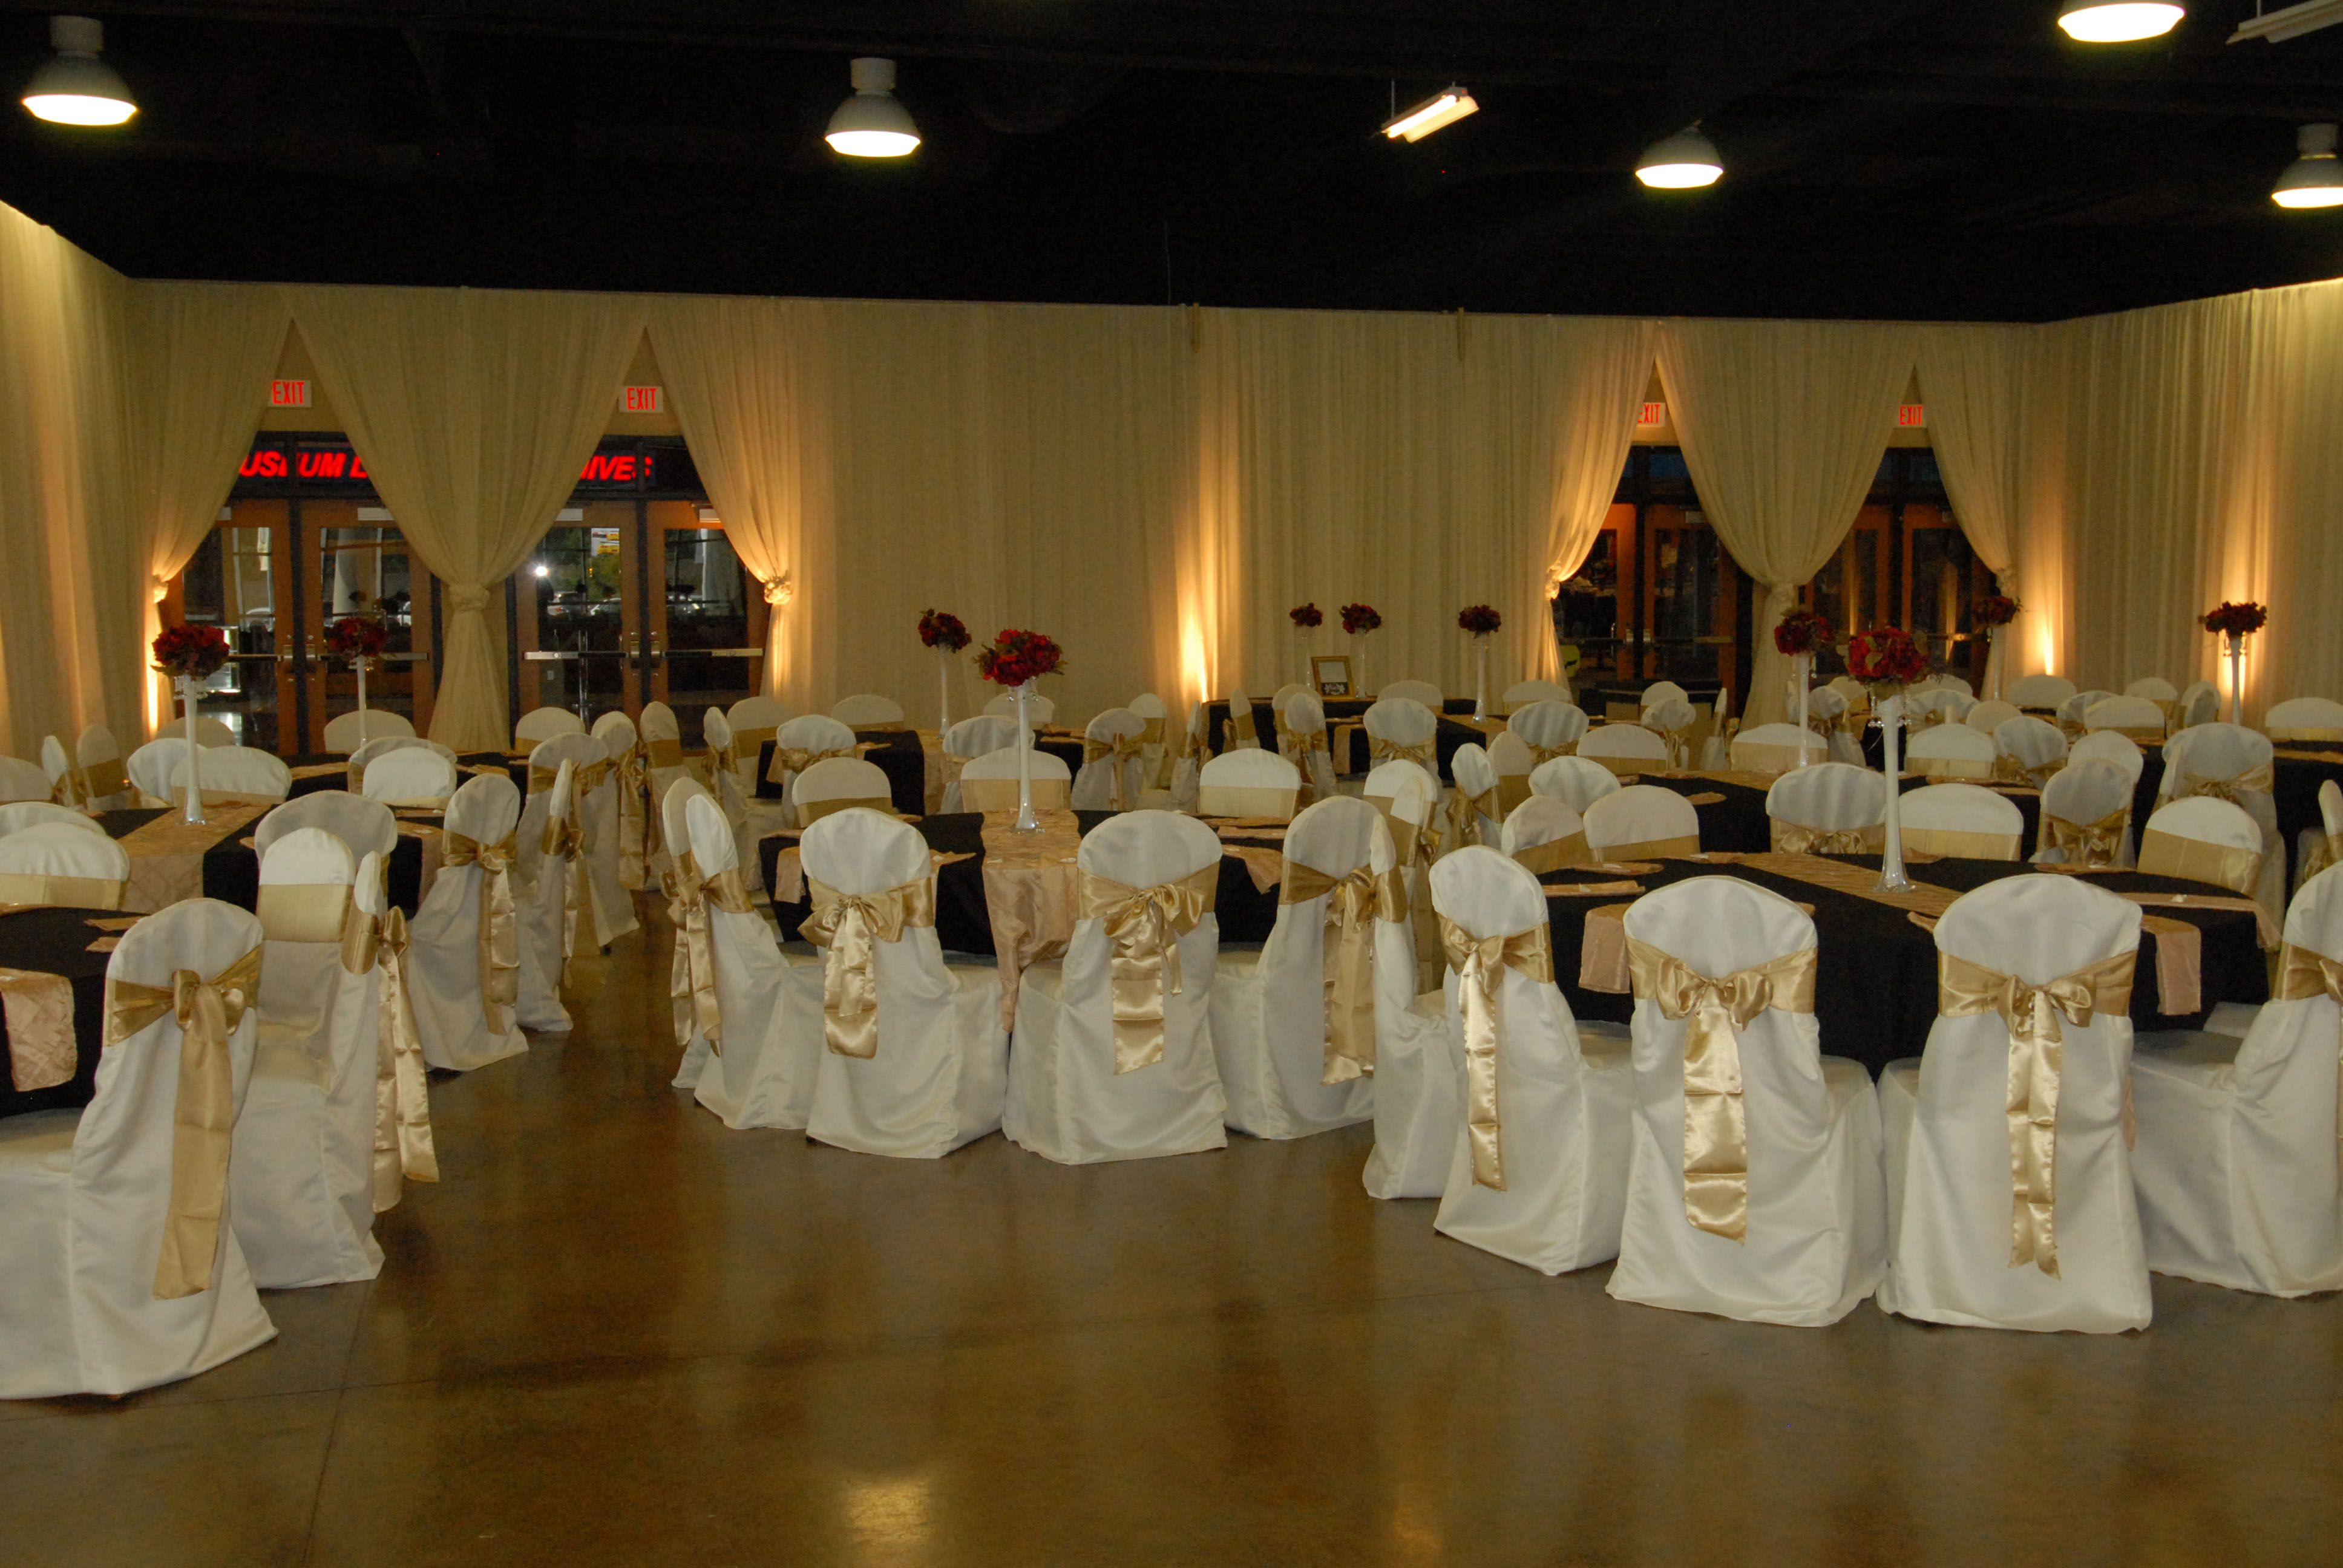 This Wedding Reception Customer Chose To Drape The Walls With A Cream Wedding Inspiration Fall White And Gold Wedding Cake 50th Wedding Anniversary Decorations